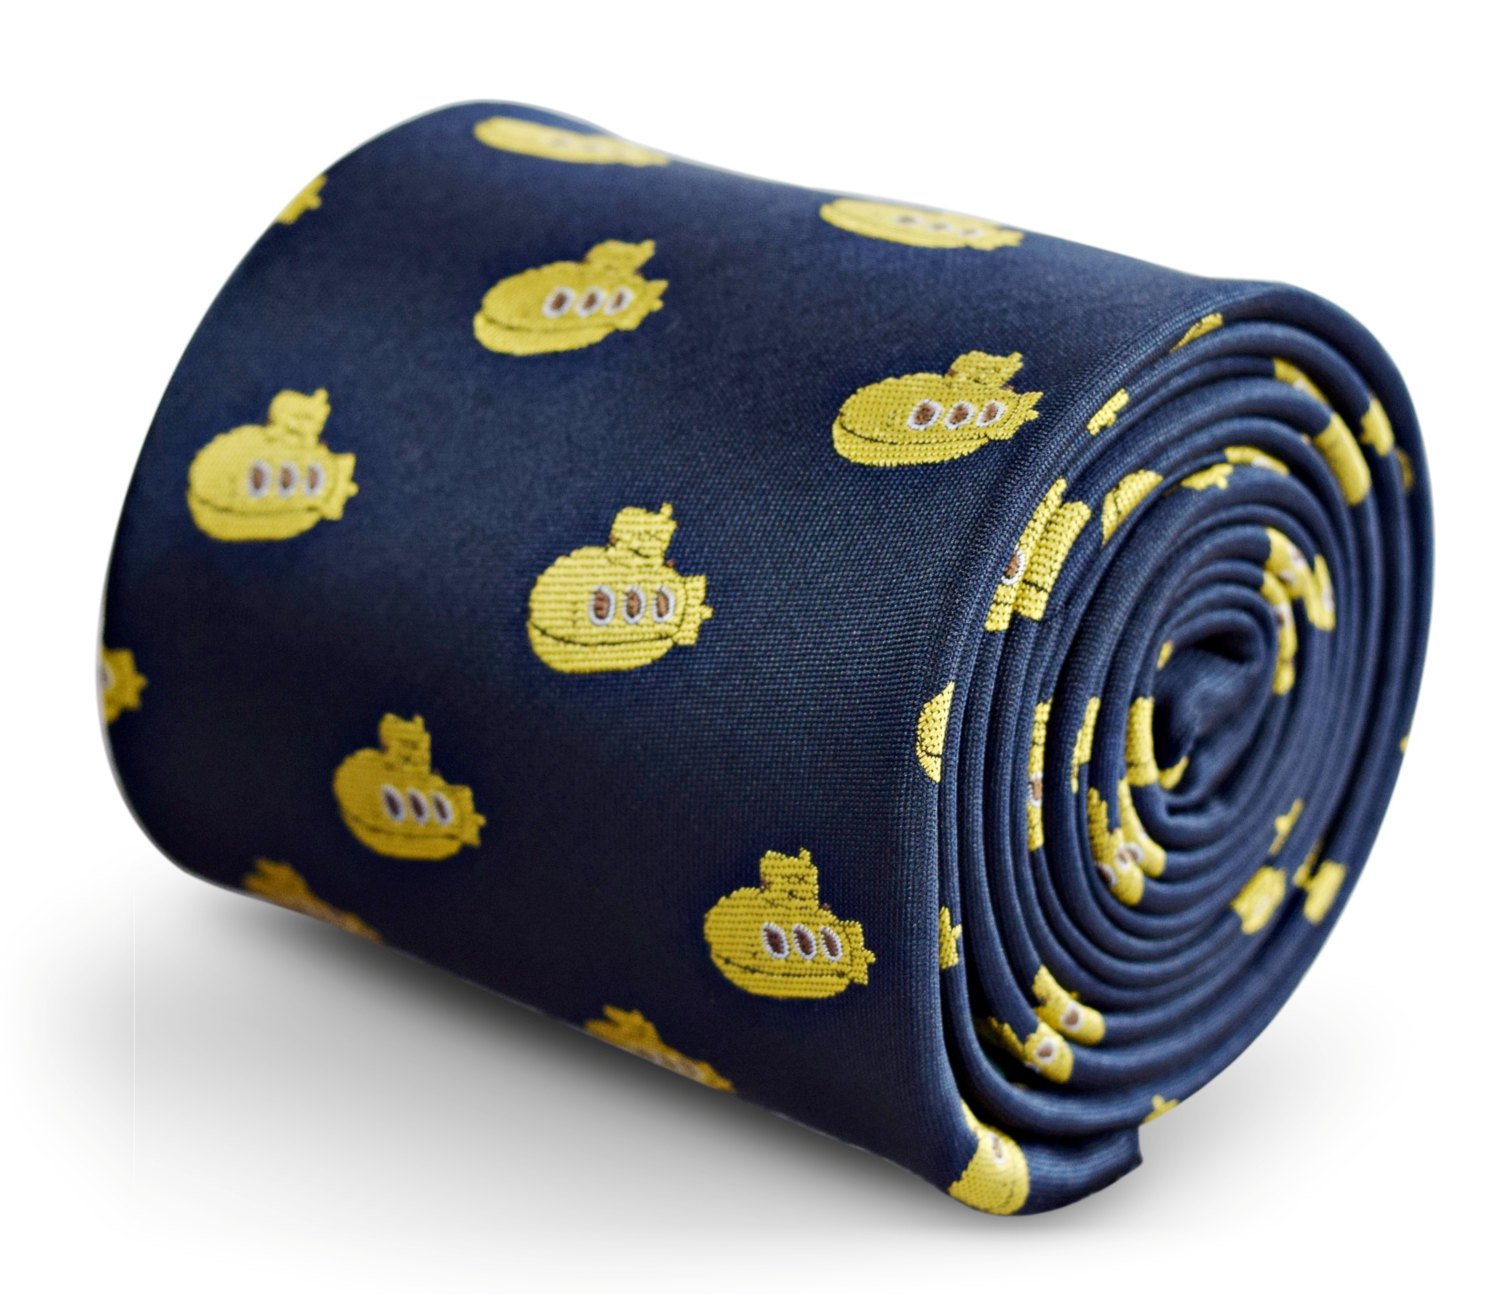 navy tie with yellow submarine embroidered design with floral design to the rear